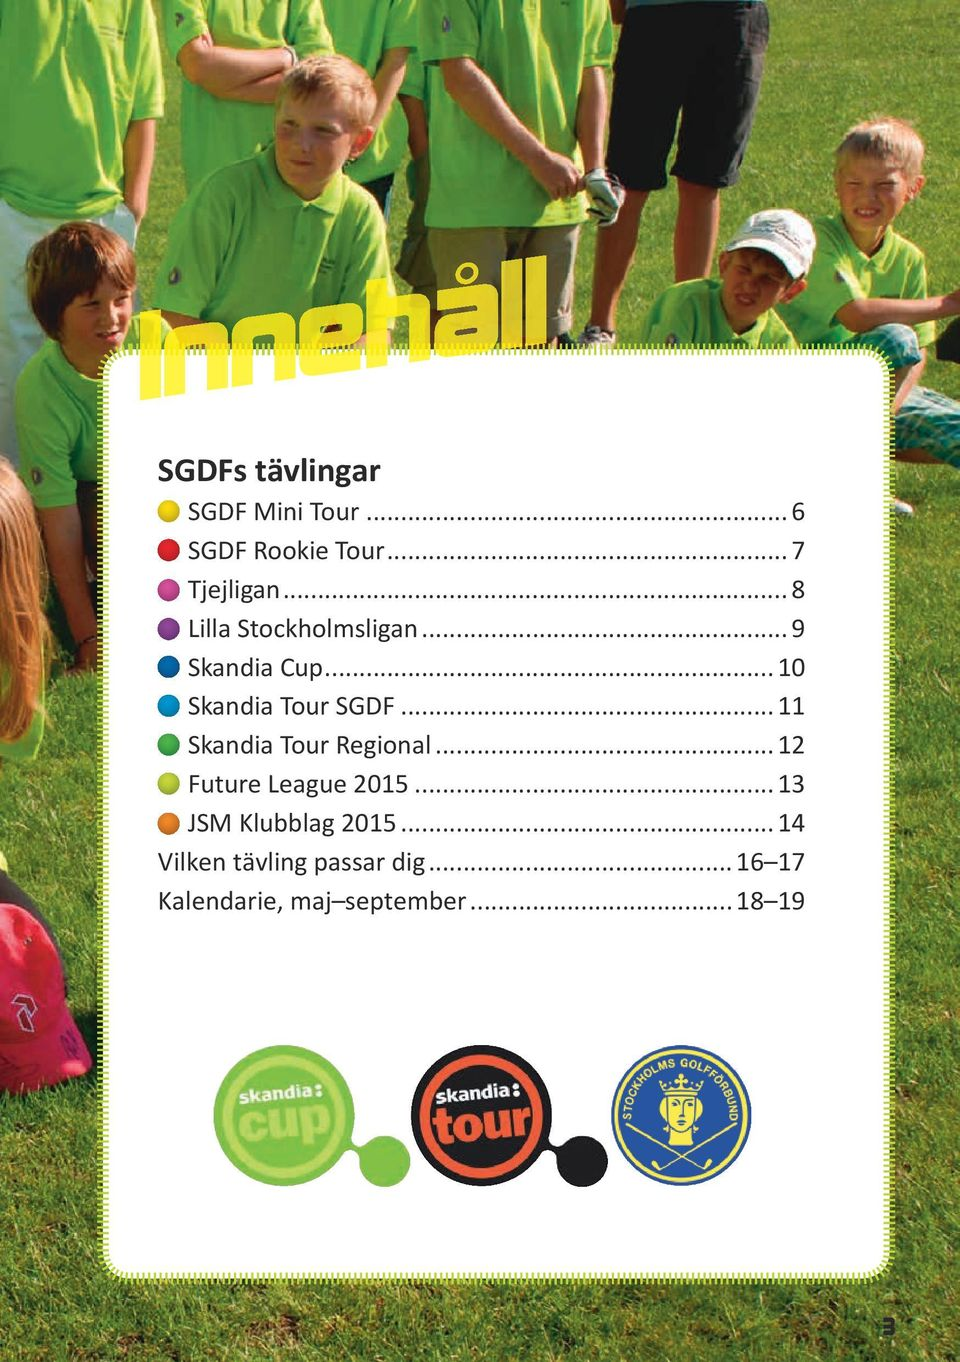 .. 11 Skandia Tour Regional... 12 Future League 2015... 13 JSM Klubblag 2015.